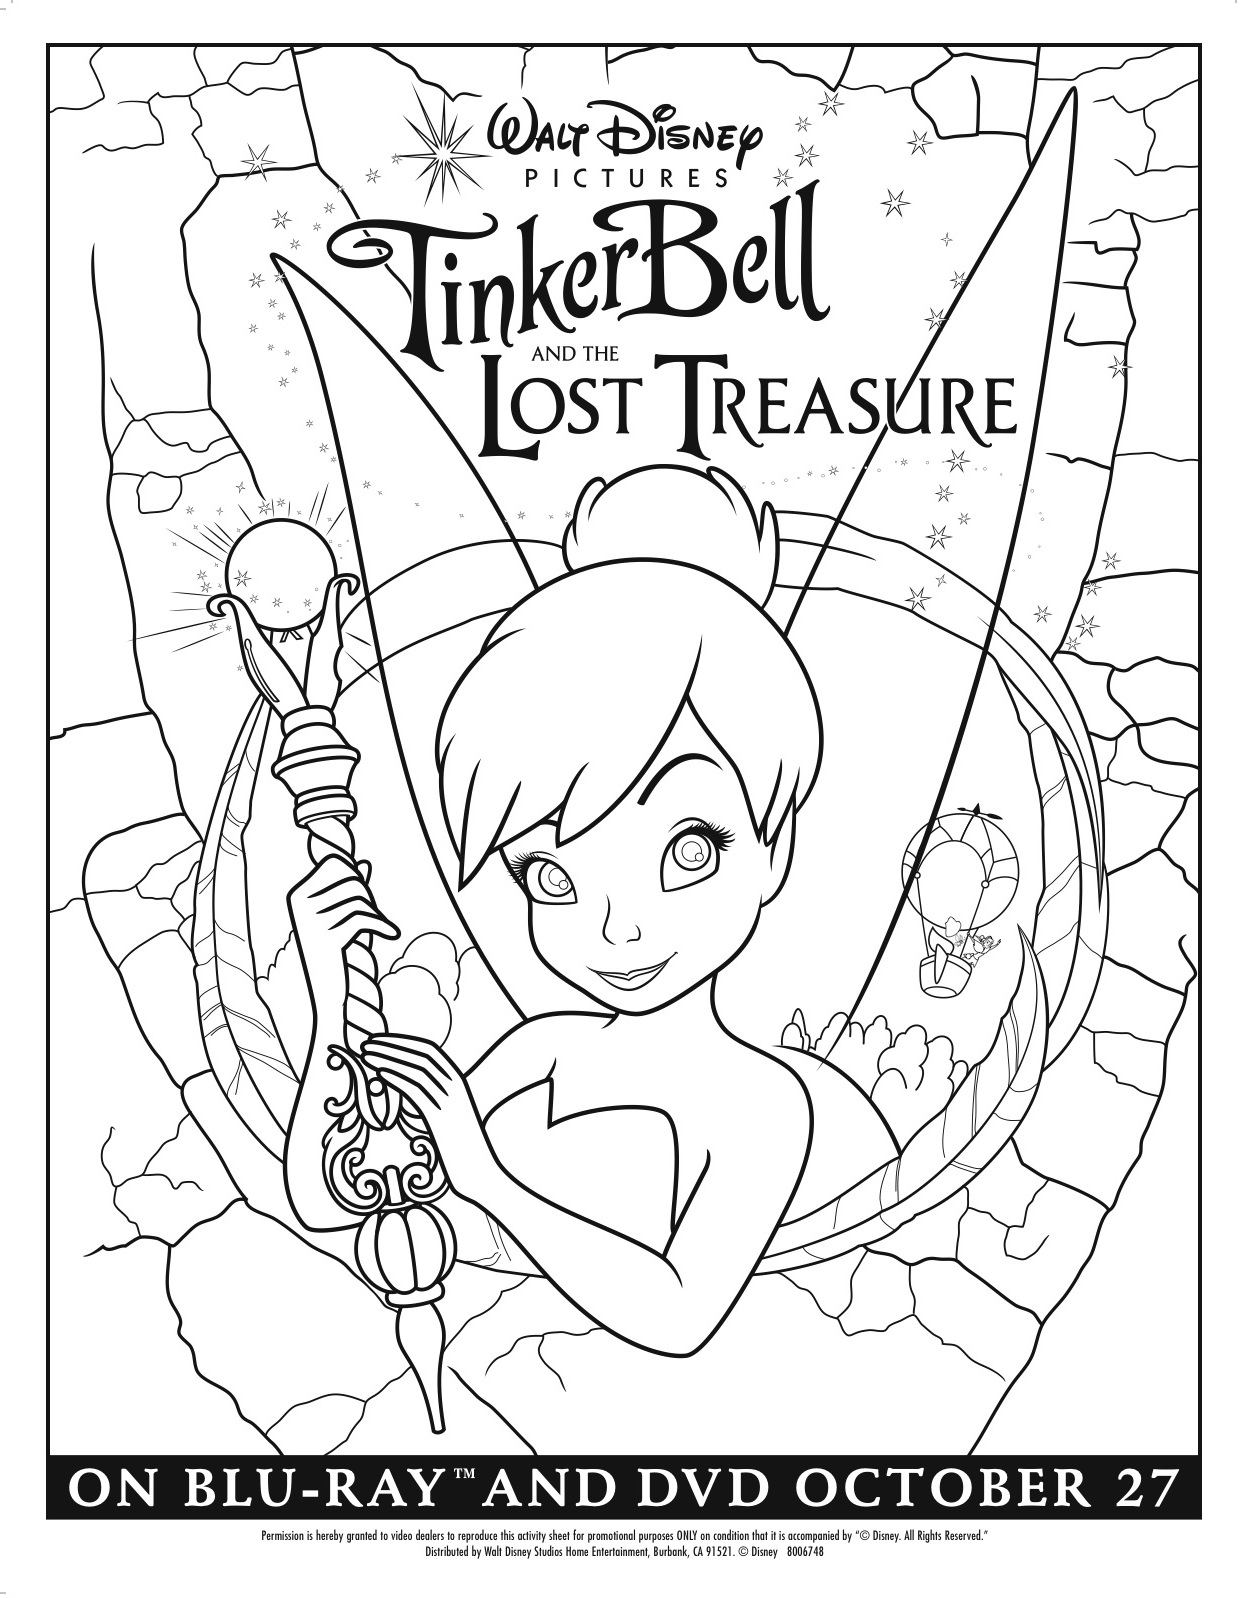 coloring book pages of tinkerbell | Tinker Bell and the Lost Treasure coloring page - No Time ...